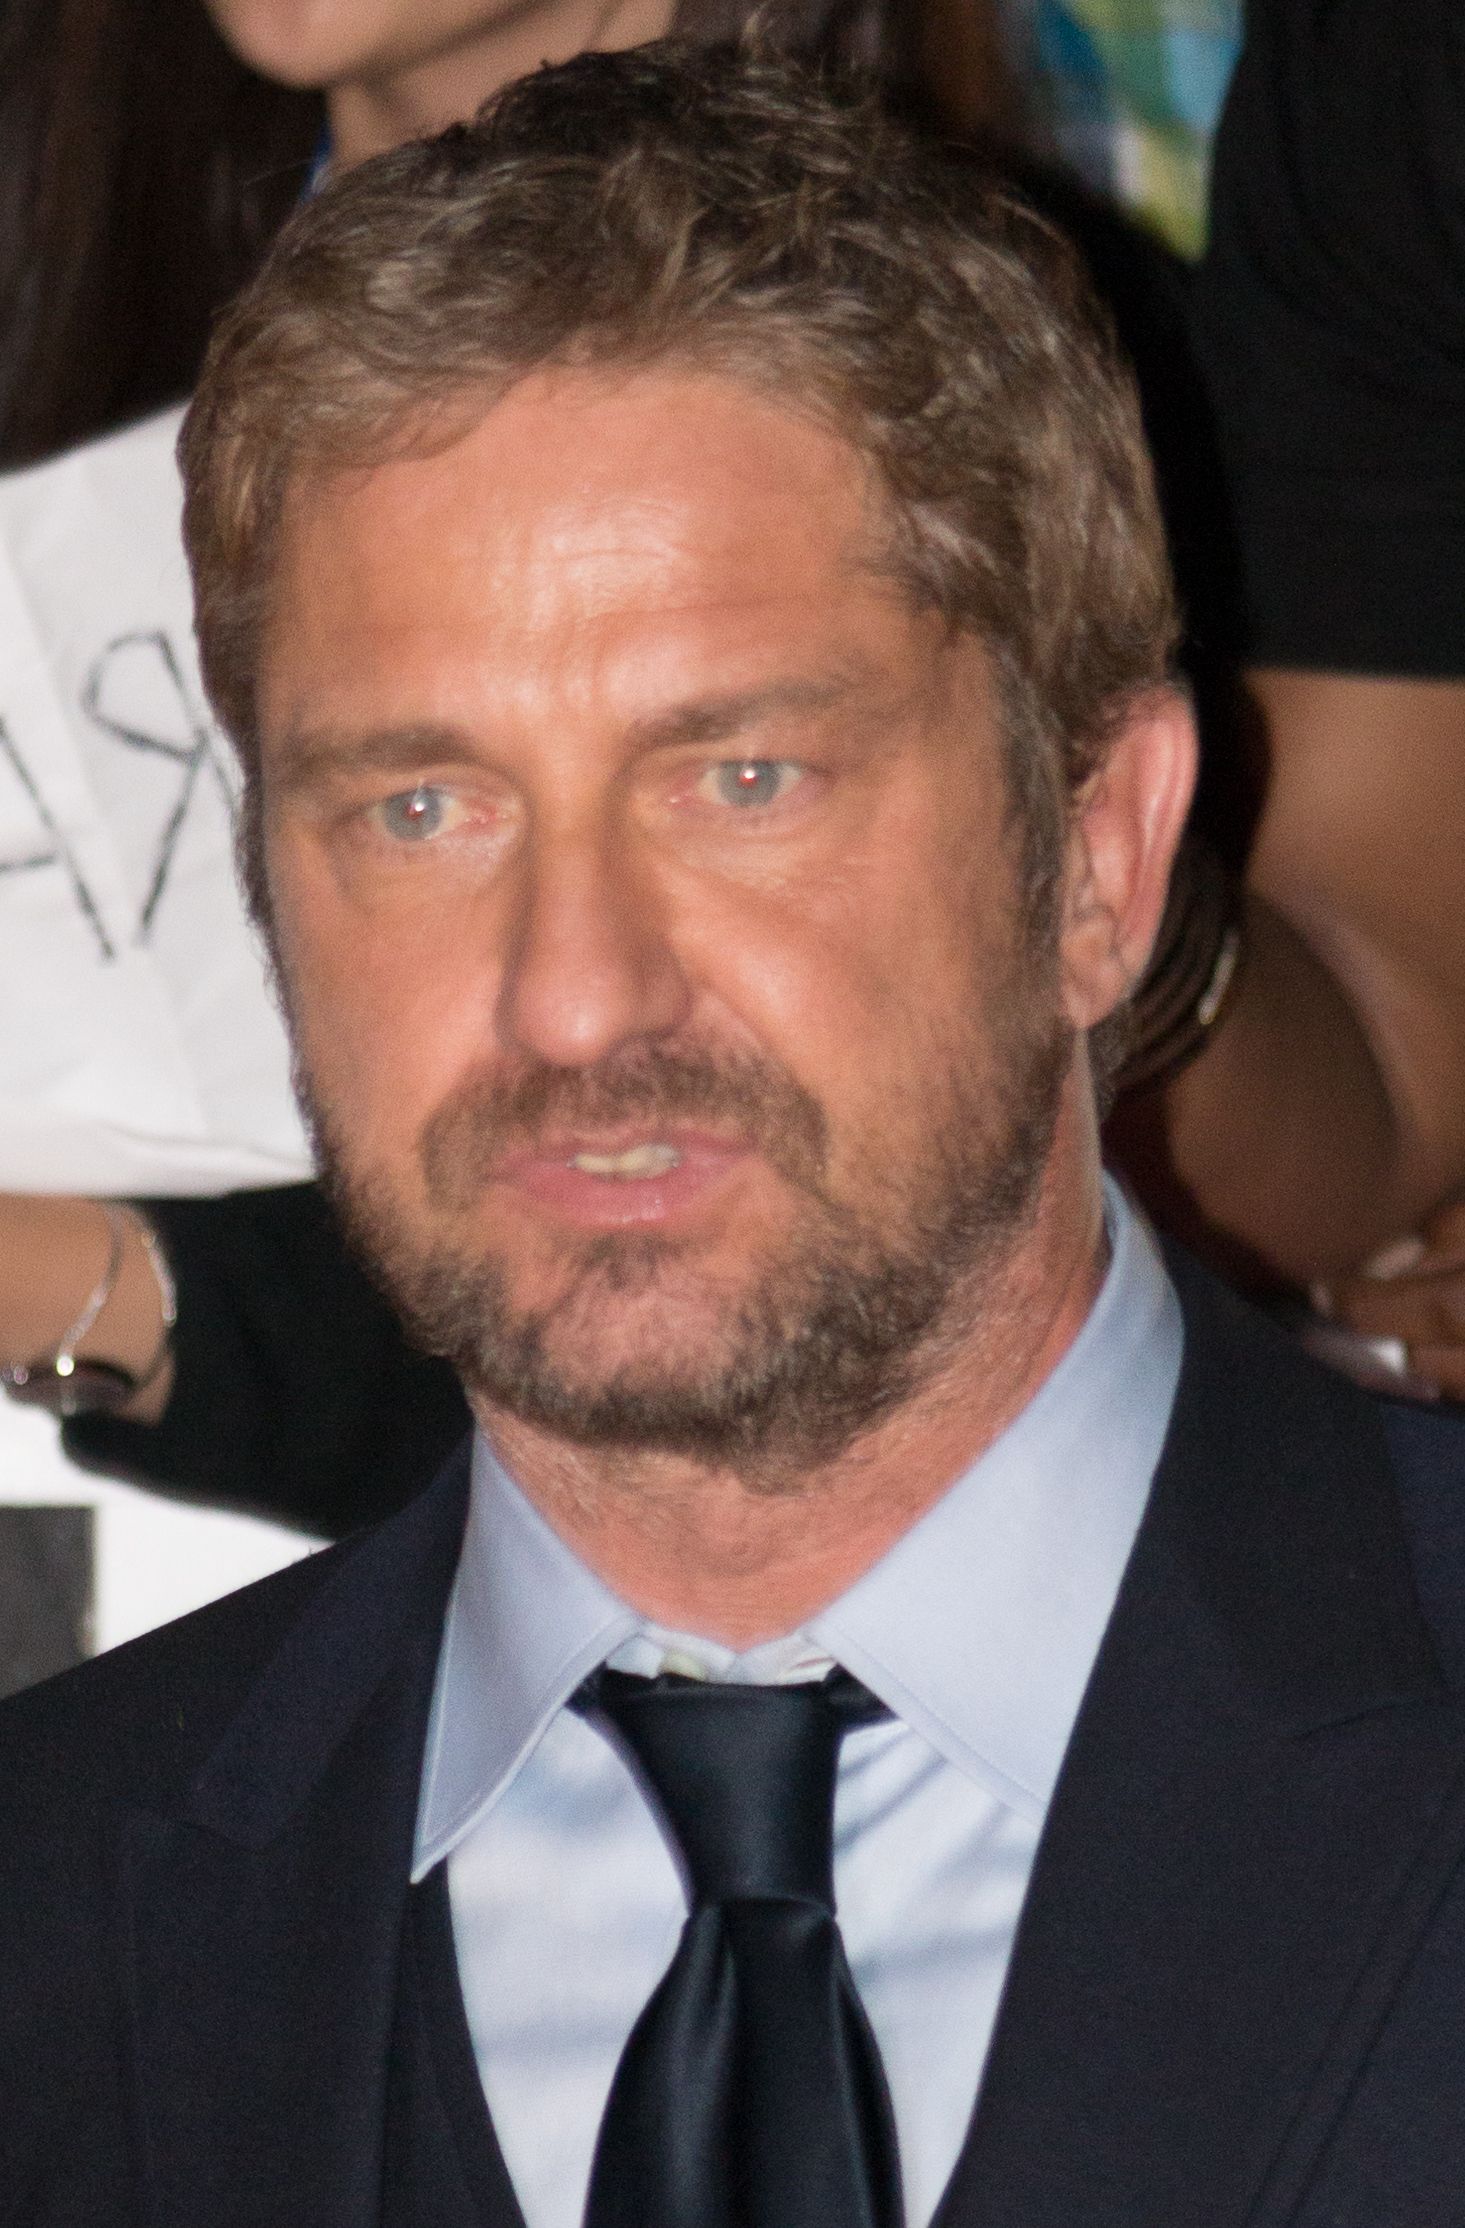 Gerard Butler Wife And Kids gerard butler - wikipedia, the free ...